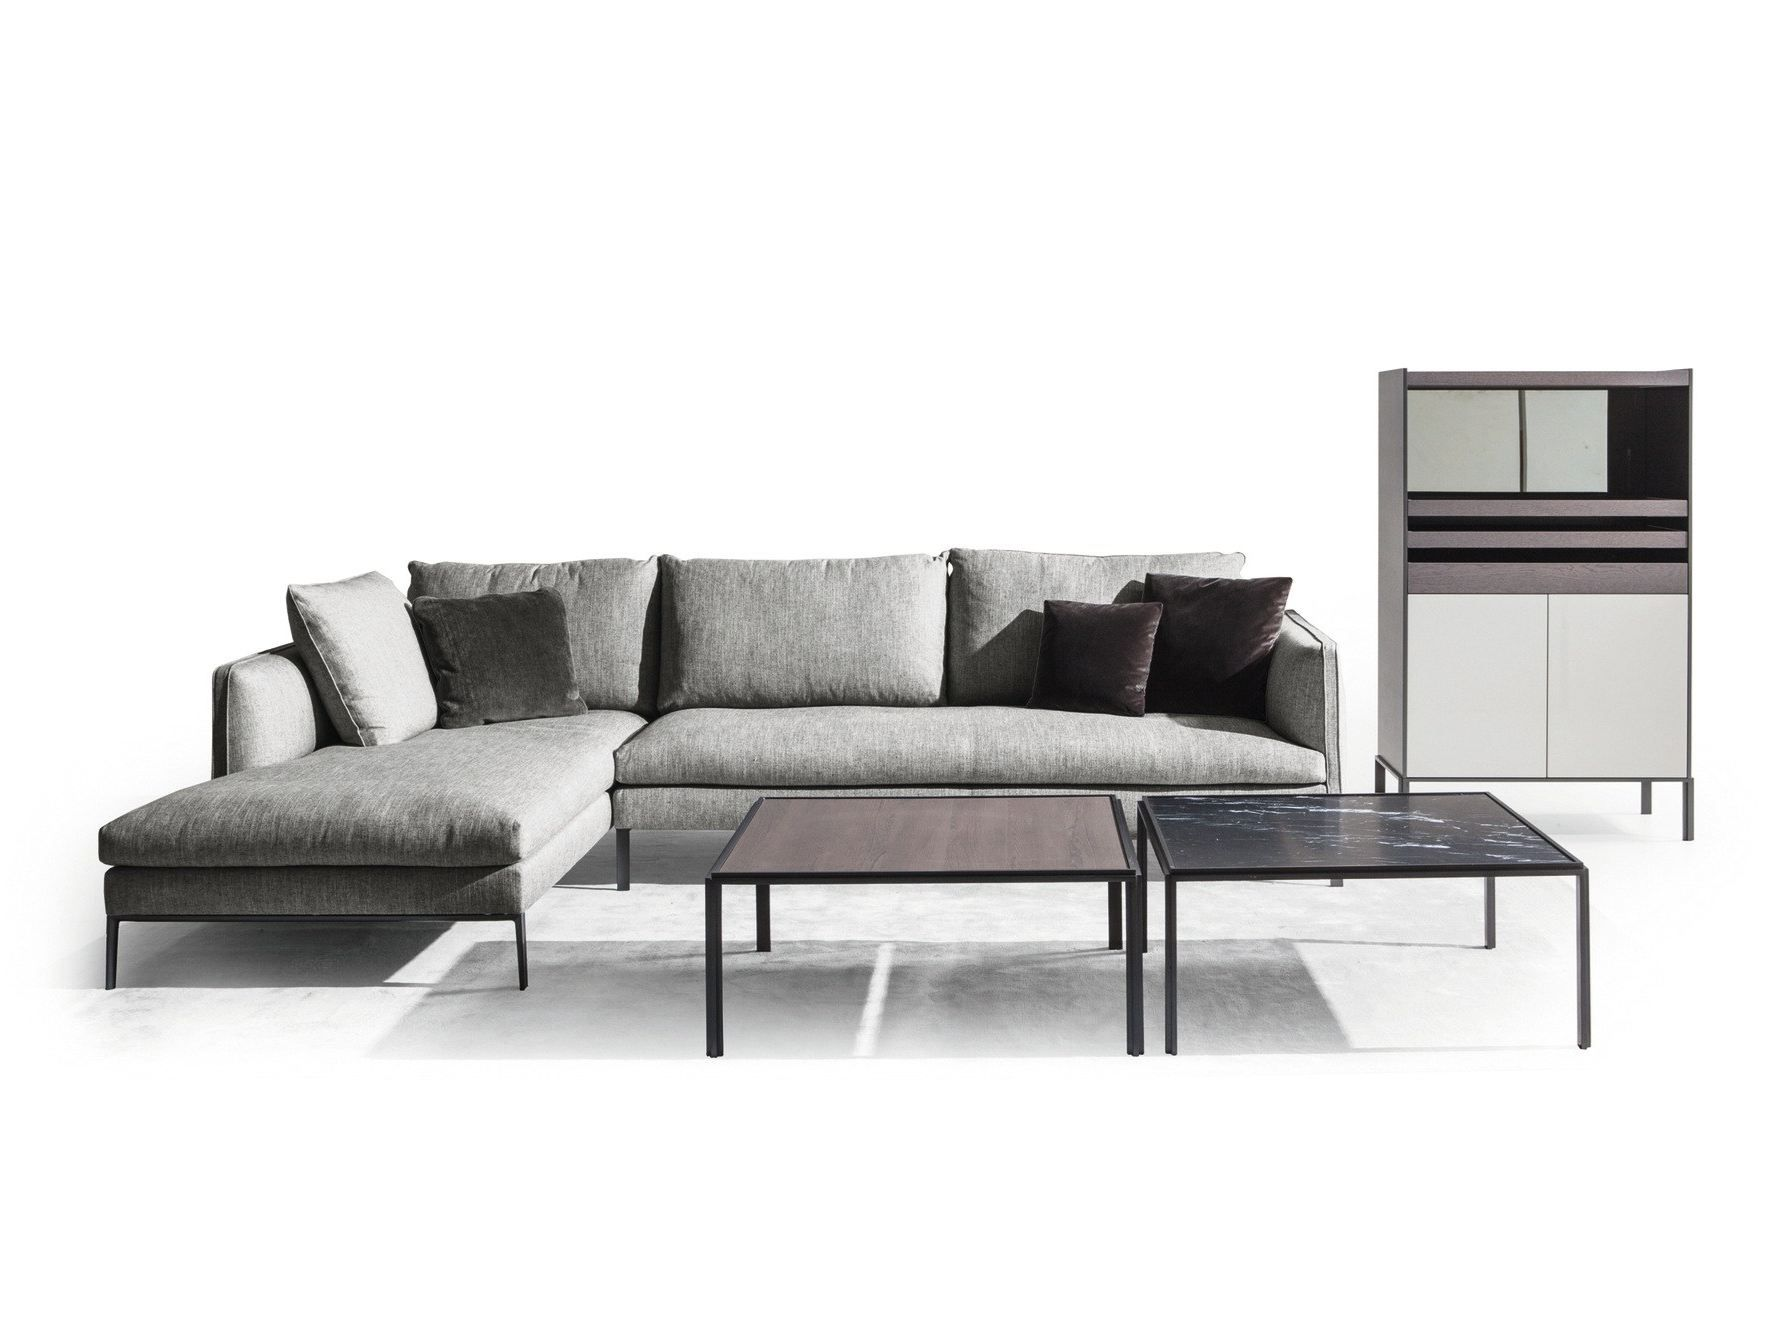 chaise longue fabric sofa 3pc euro design dark gray microfiber sectional paul with by molteni and c